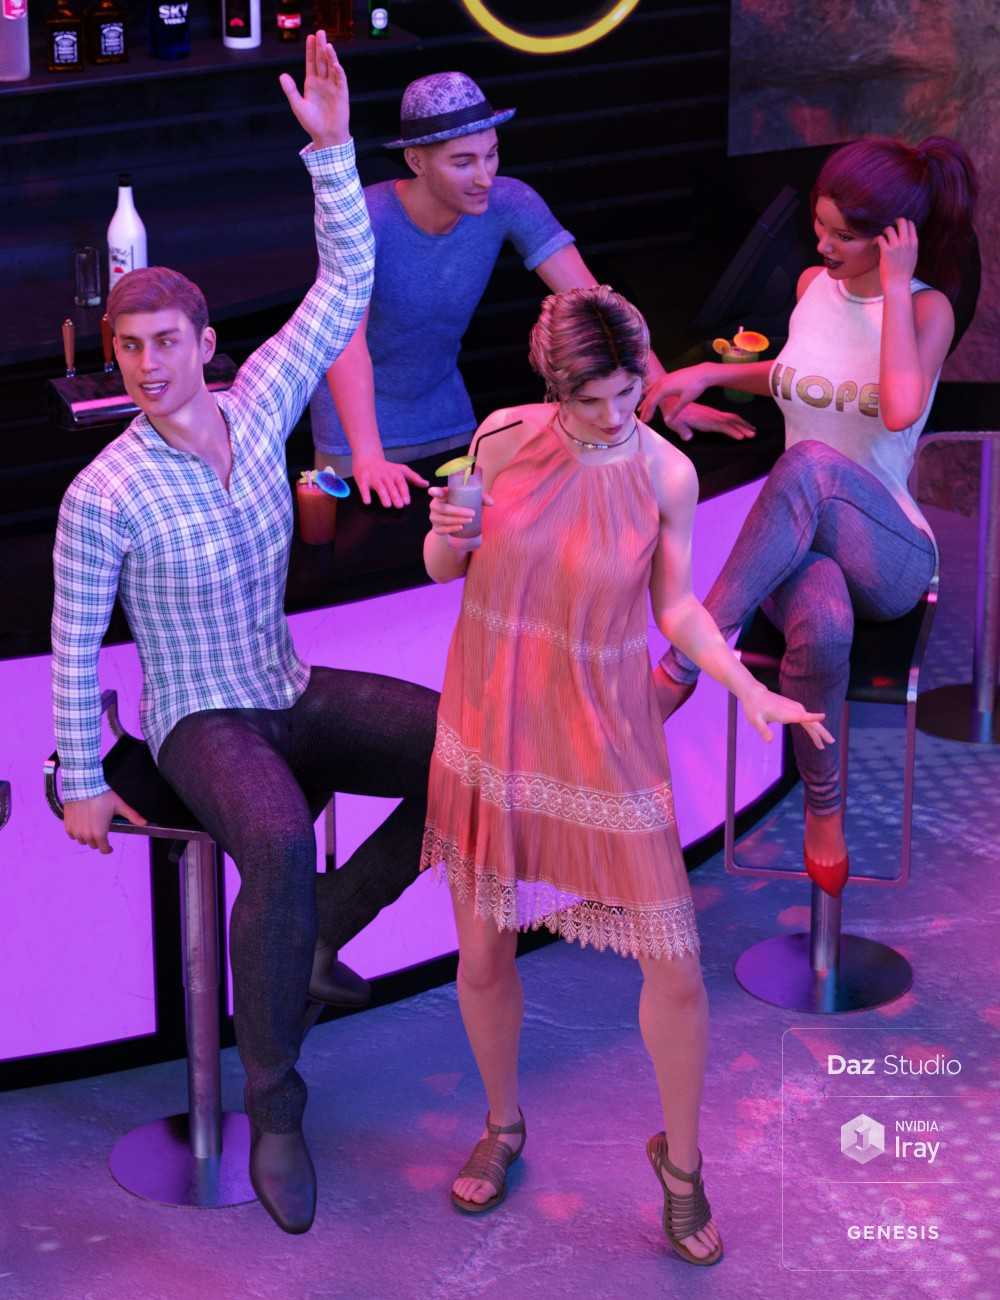 Underground Dance Club Poses and Expressions for Genesis 8